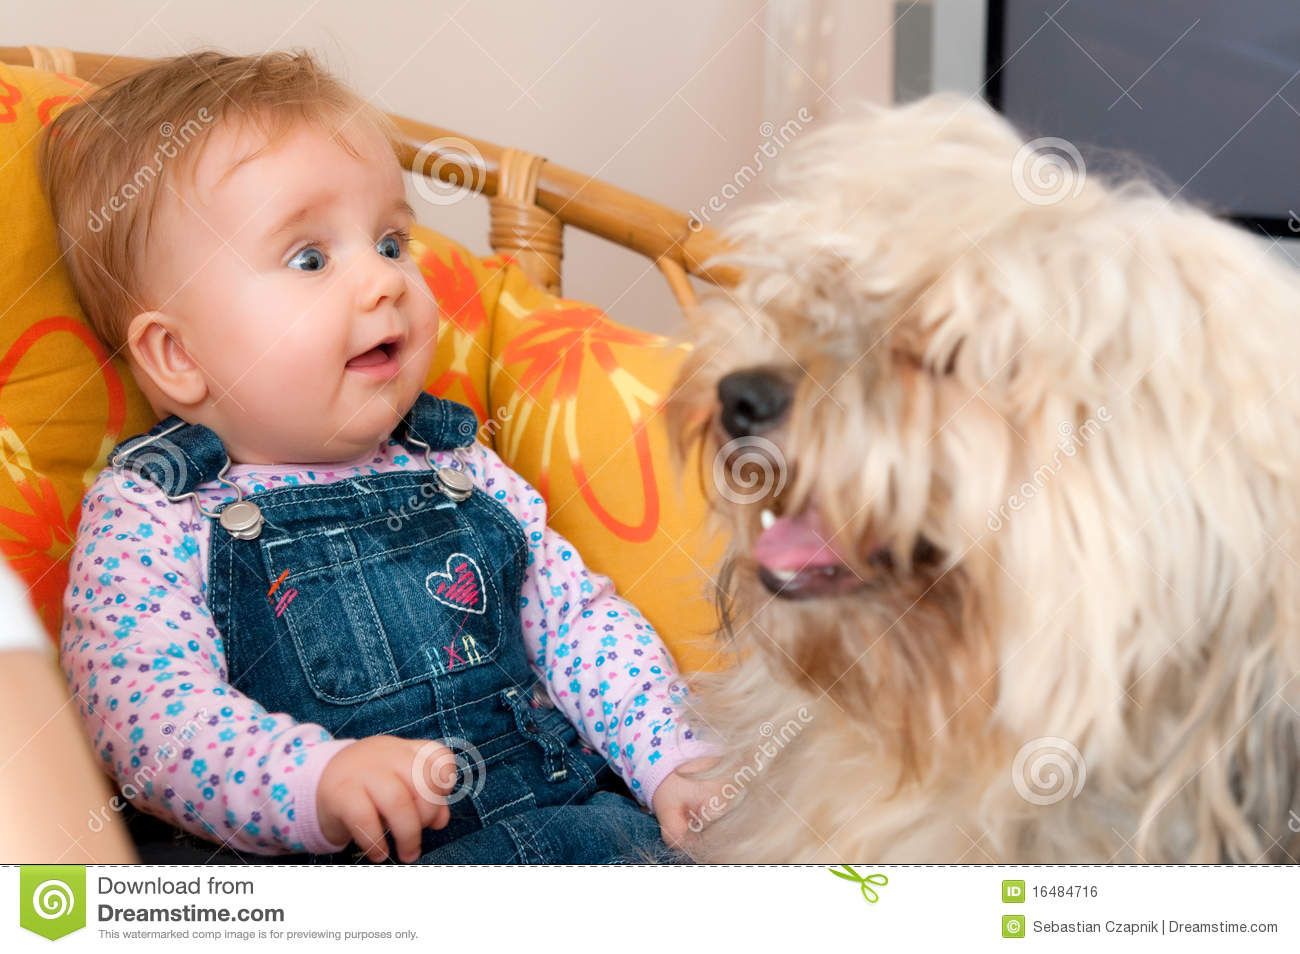 Baby girl with pet dog